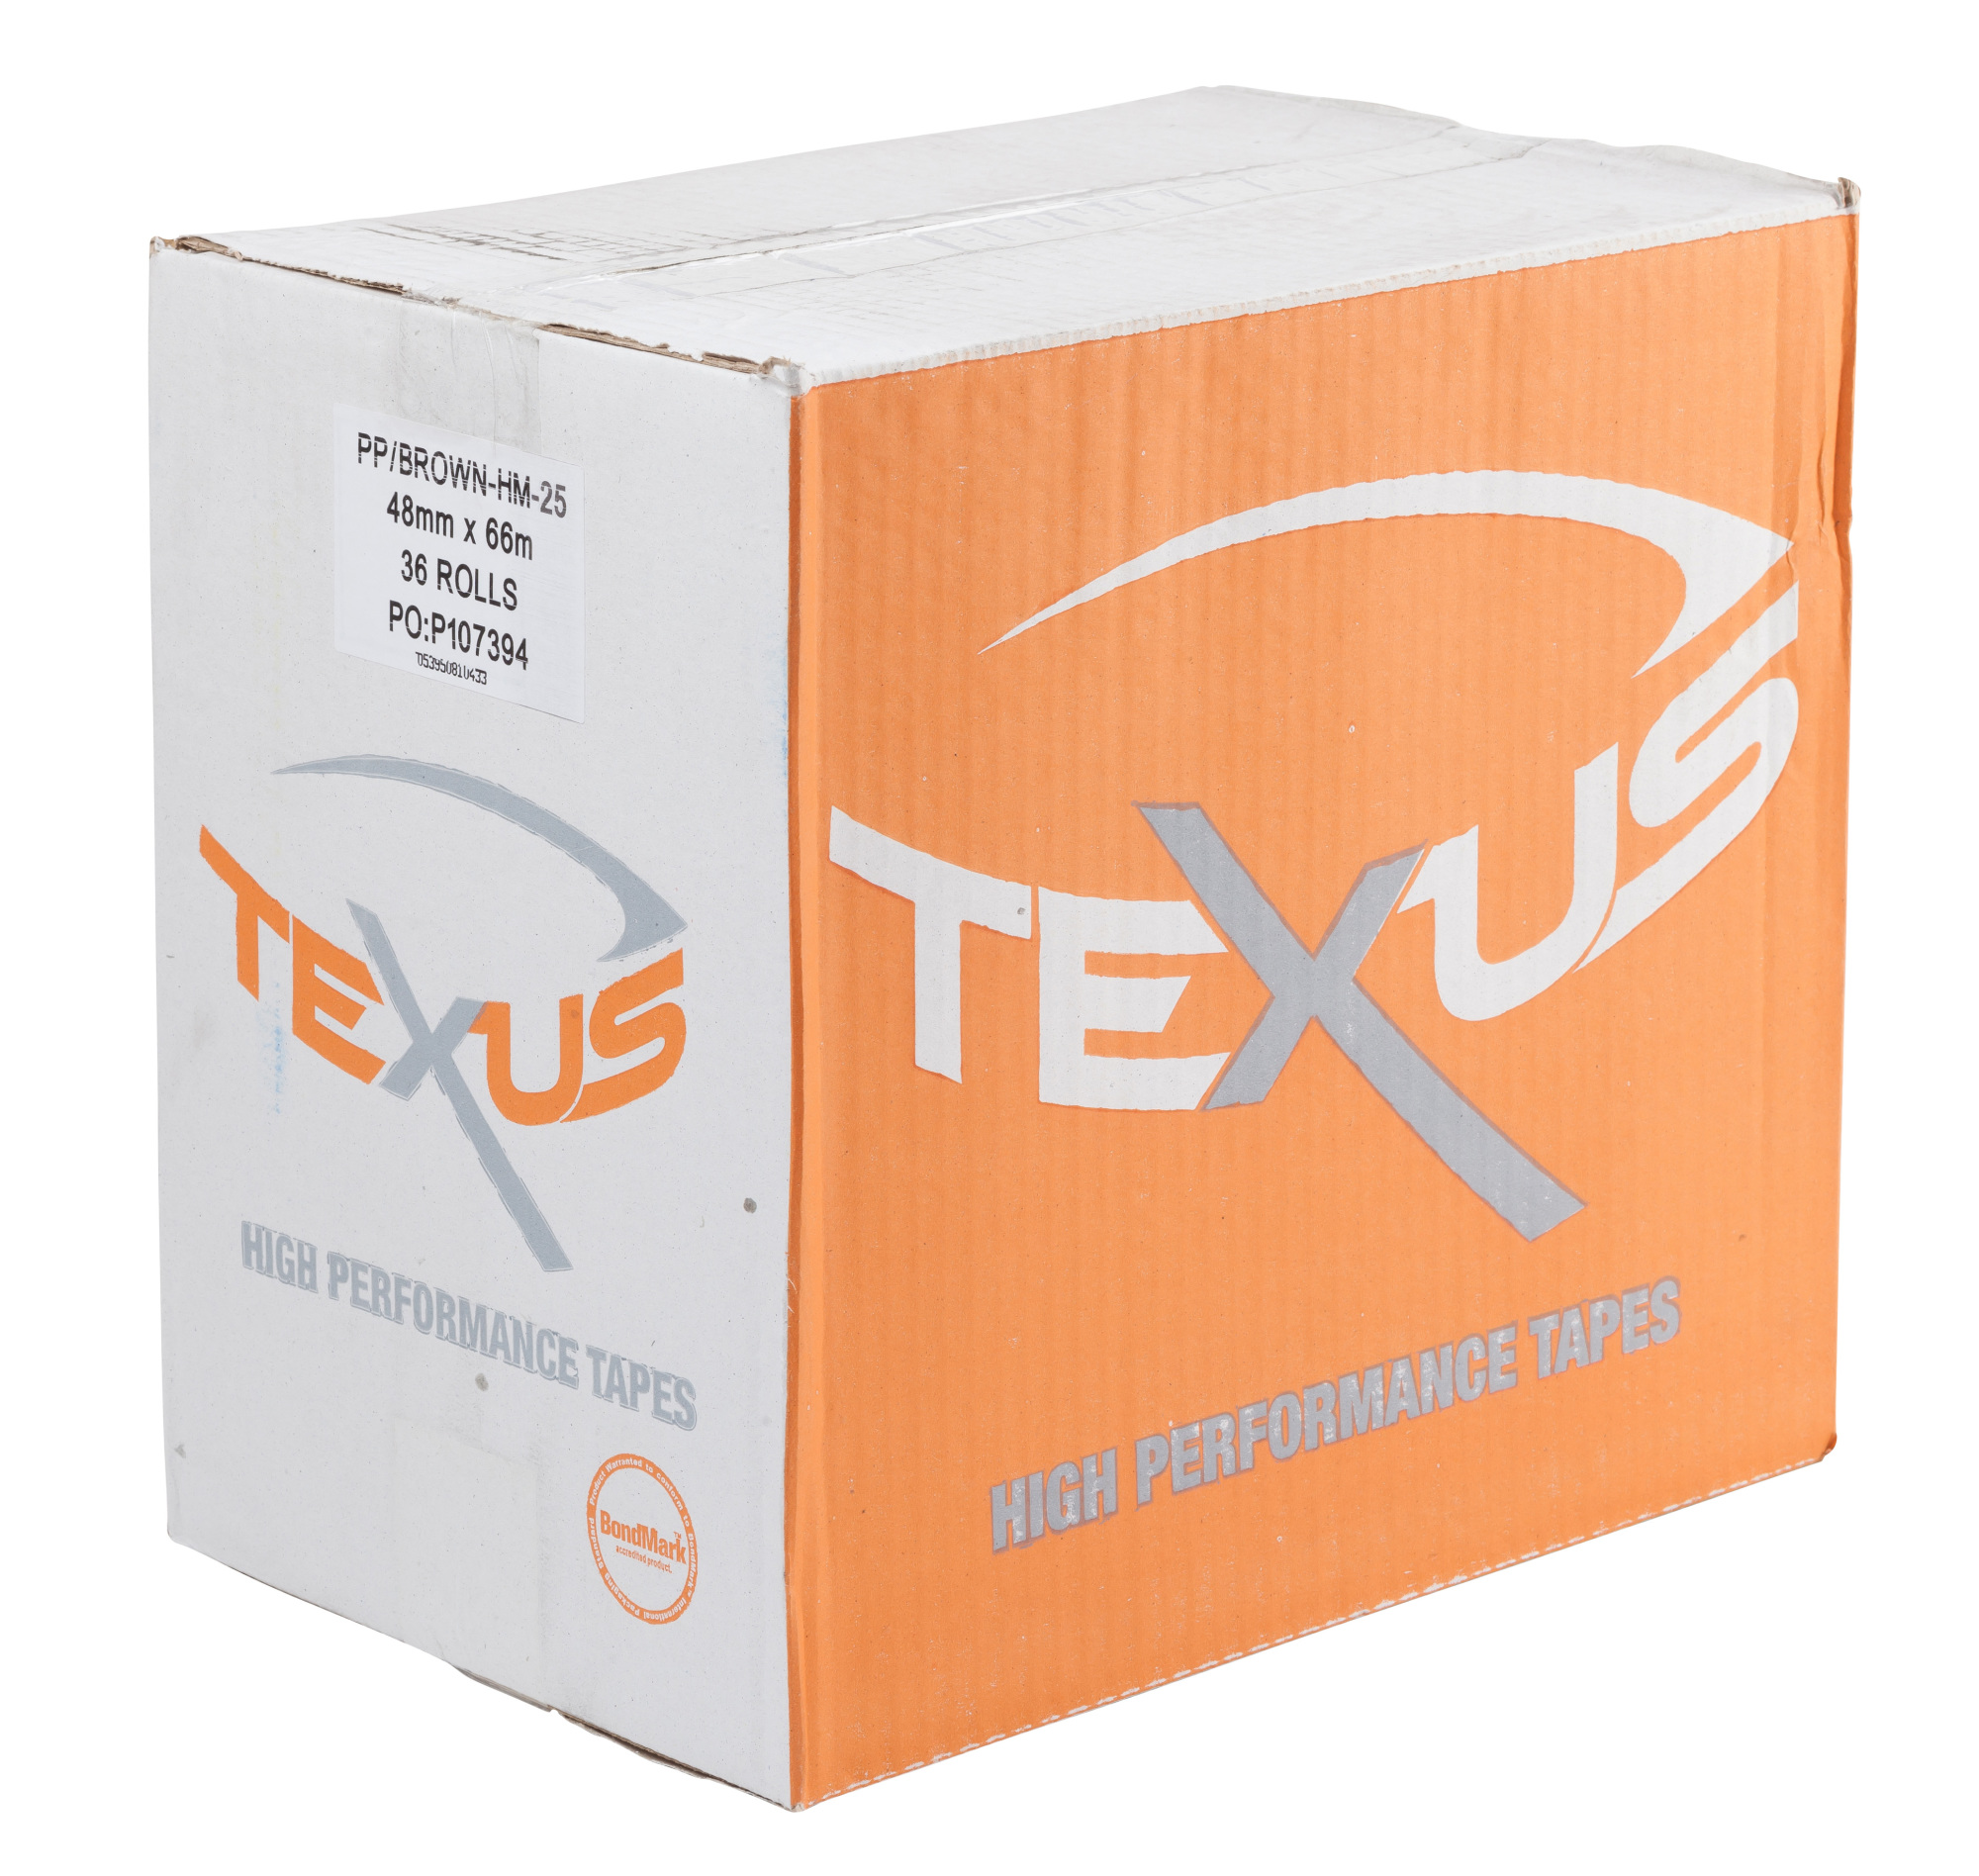 TEXUS 12mm x 66m Clear PP Easy Tear